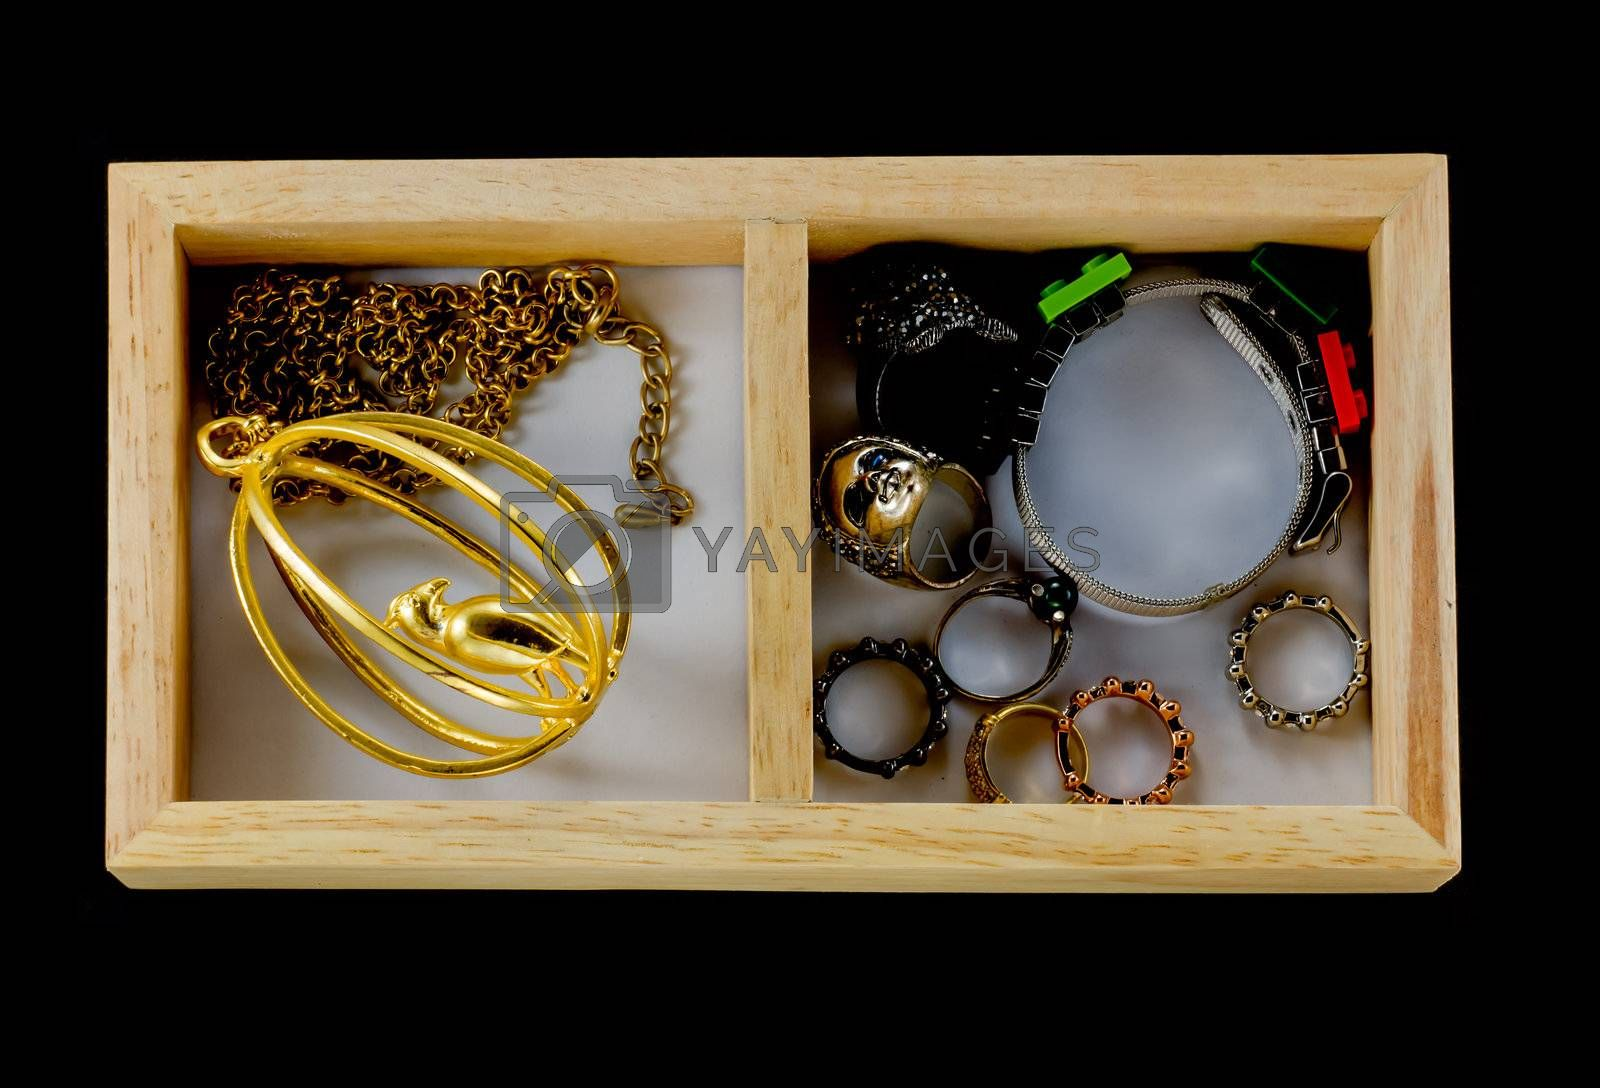 Many accessory such as necklace, rings and bracelet in the wooden box